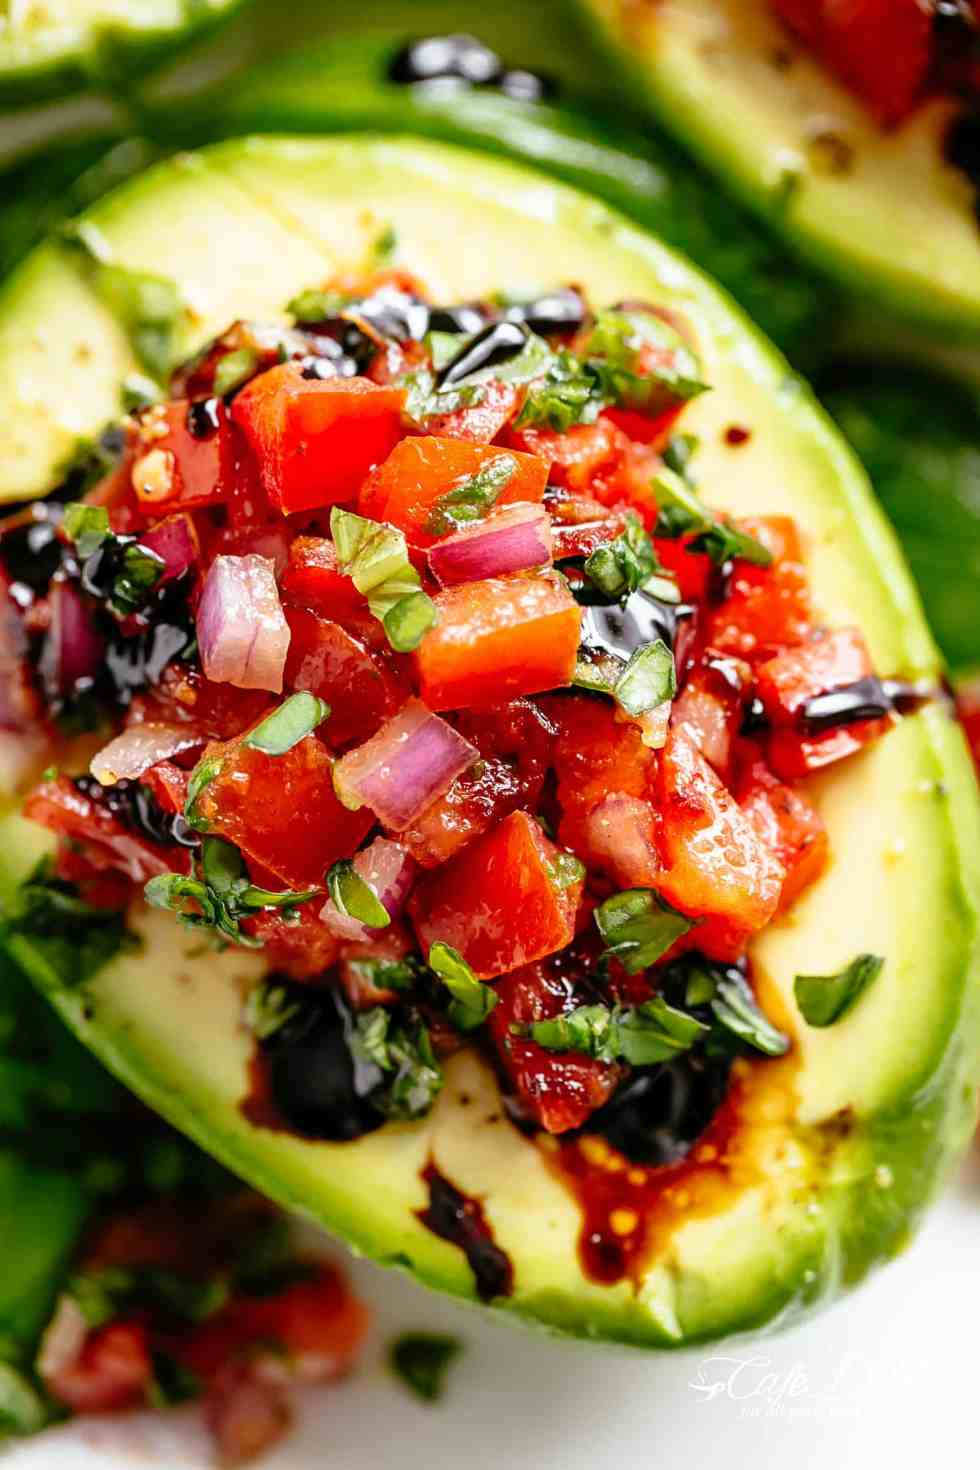 Take creamy avocados to a different level with Bruschetta Stuffed Avocados! Bruschetta tomato stuffed into Avocados with parmesan and a balsamic reduction! | cafedelites.com